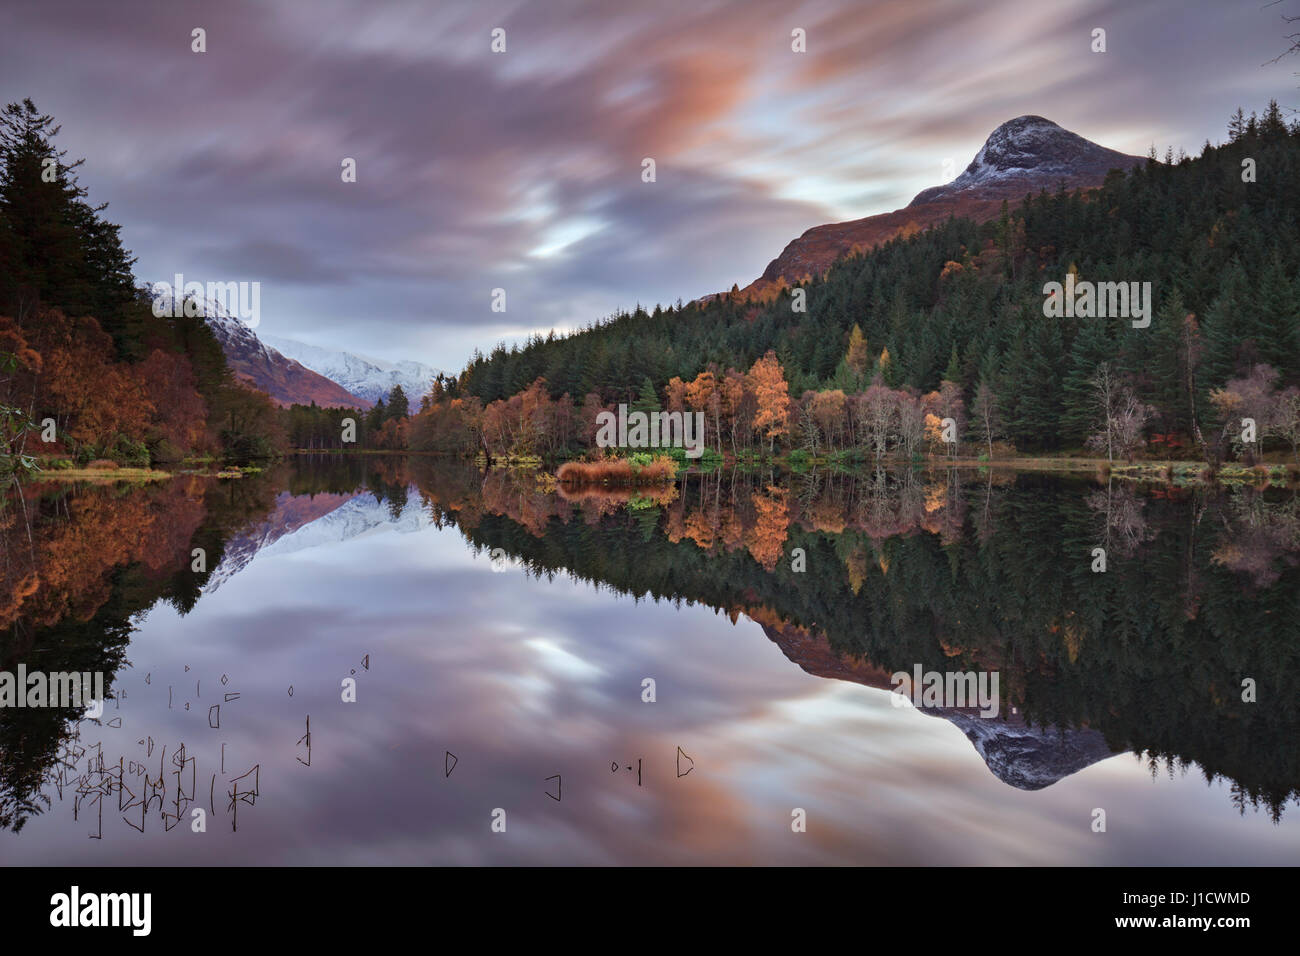 Sunrise at Glencoe Lochan neat Glencoe in Scotland - Stock Image